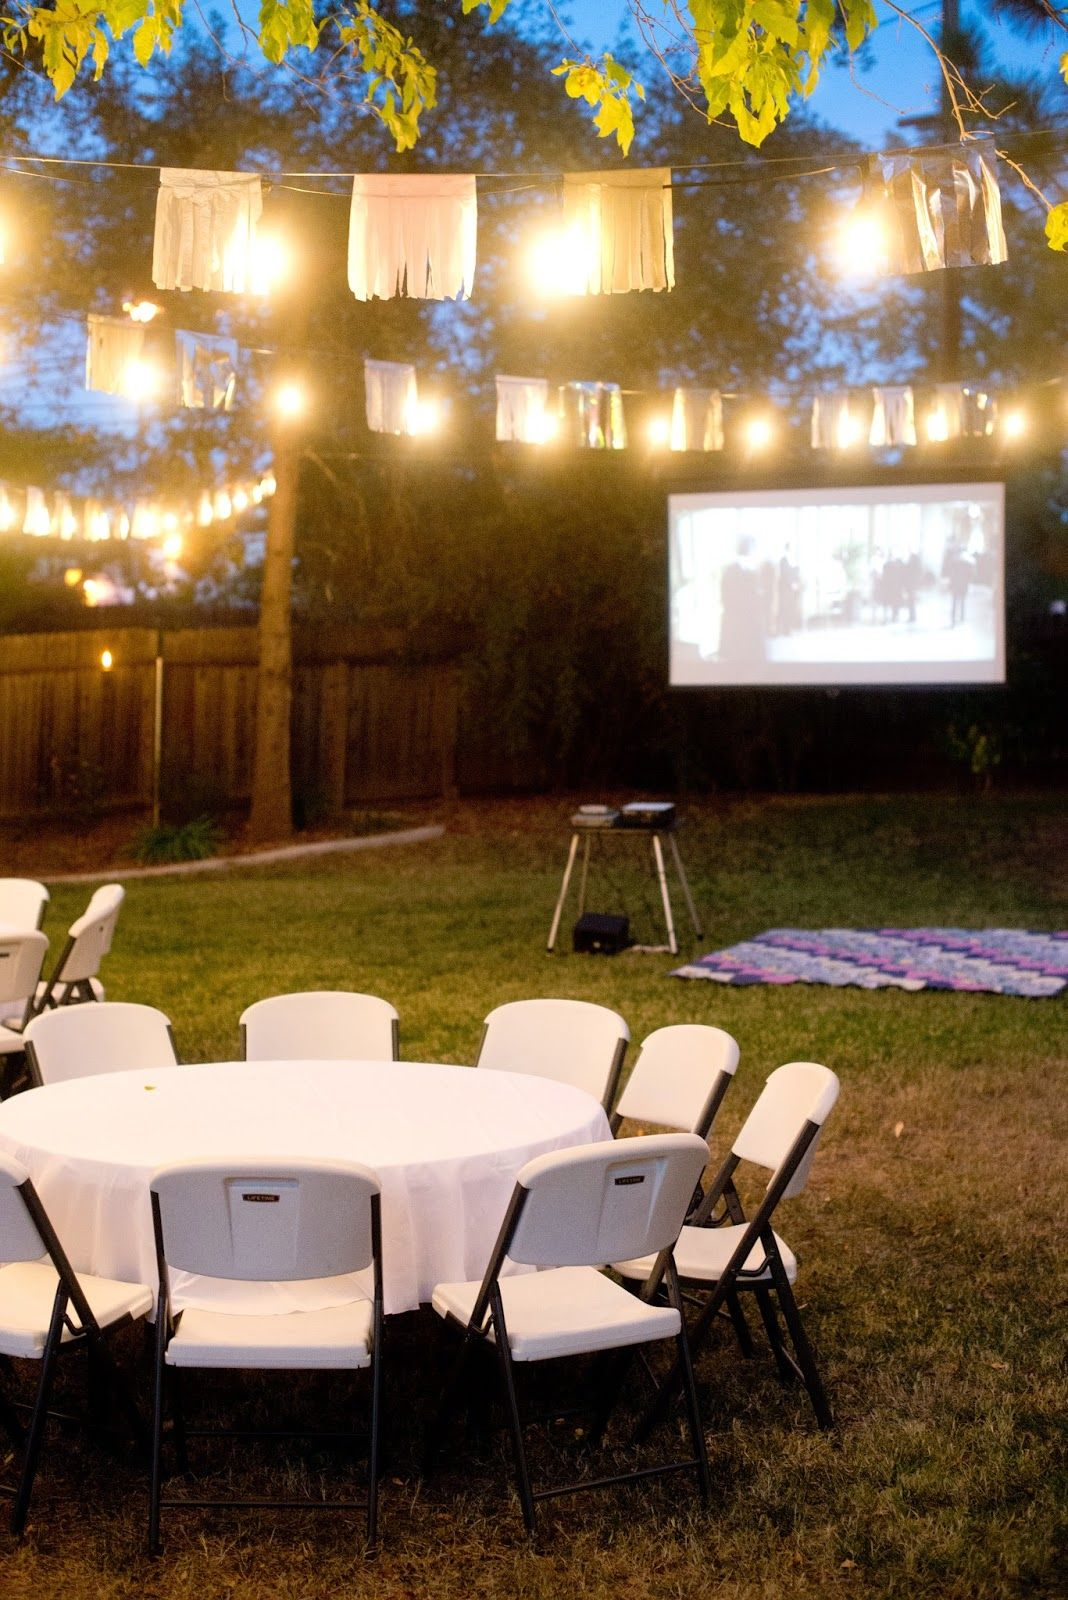 Backyard Birthday Party Ideas For Adults todays hint 7 affordable activity ideas for first birthday parties some good ideas Fall Backyard Birthday Party And Movie Night